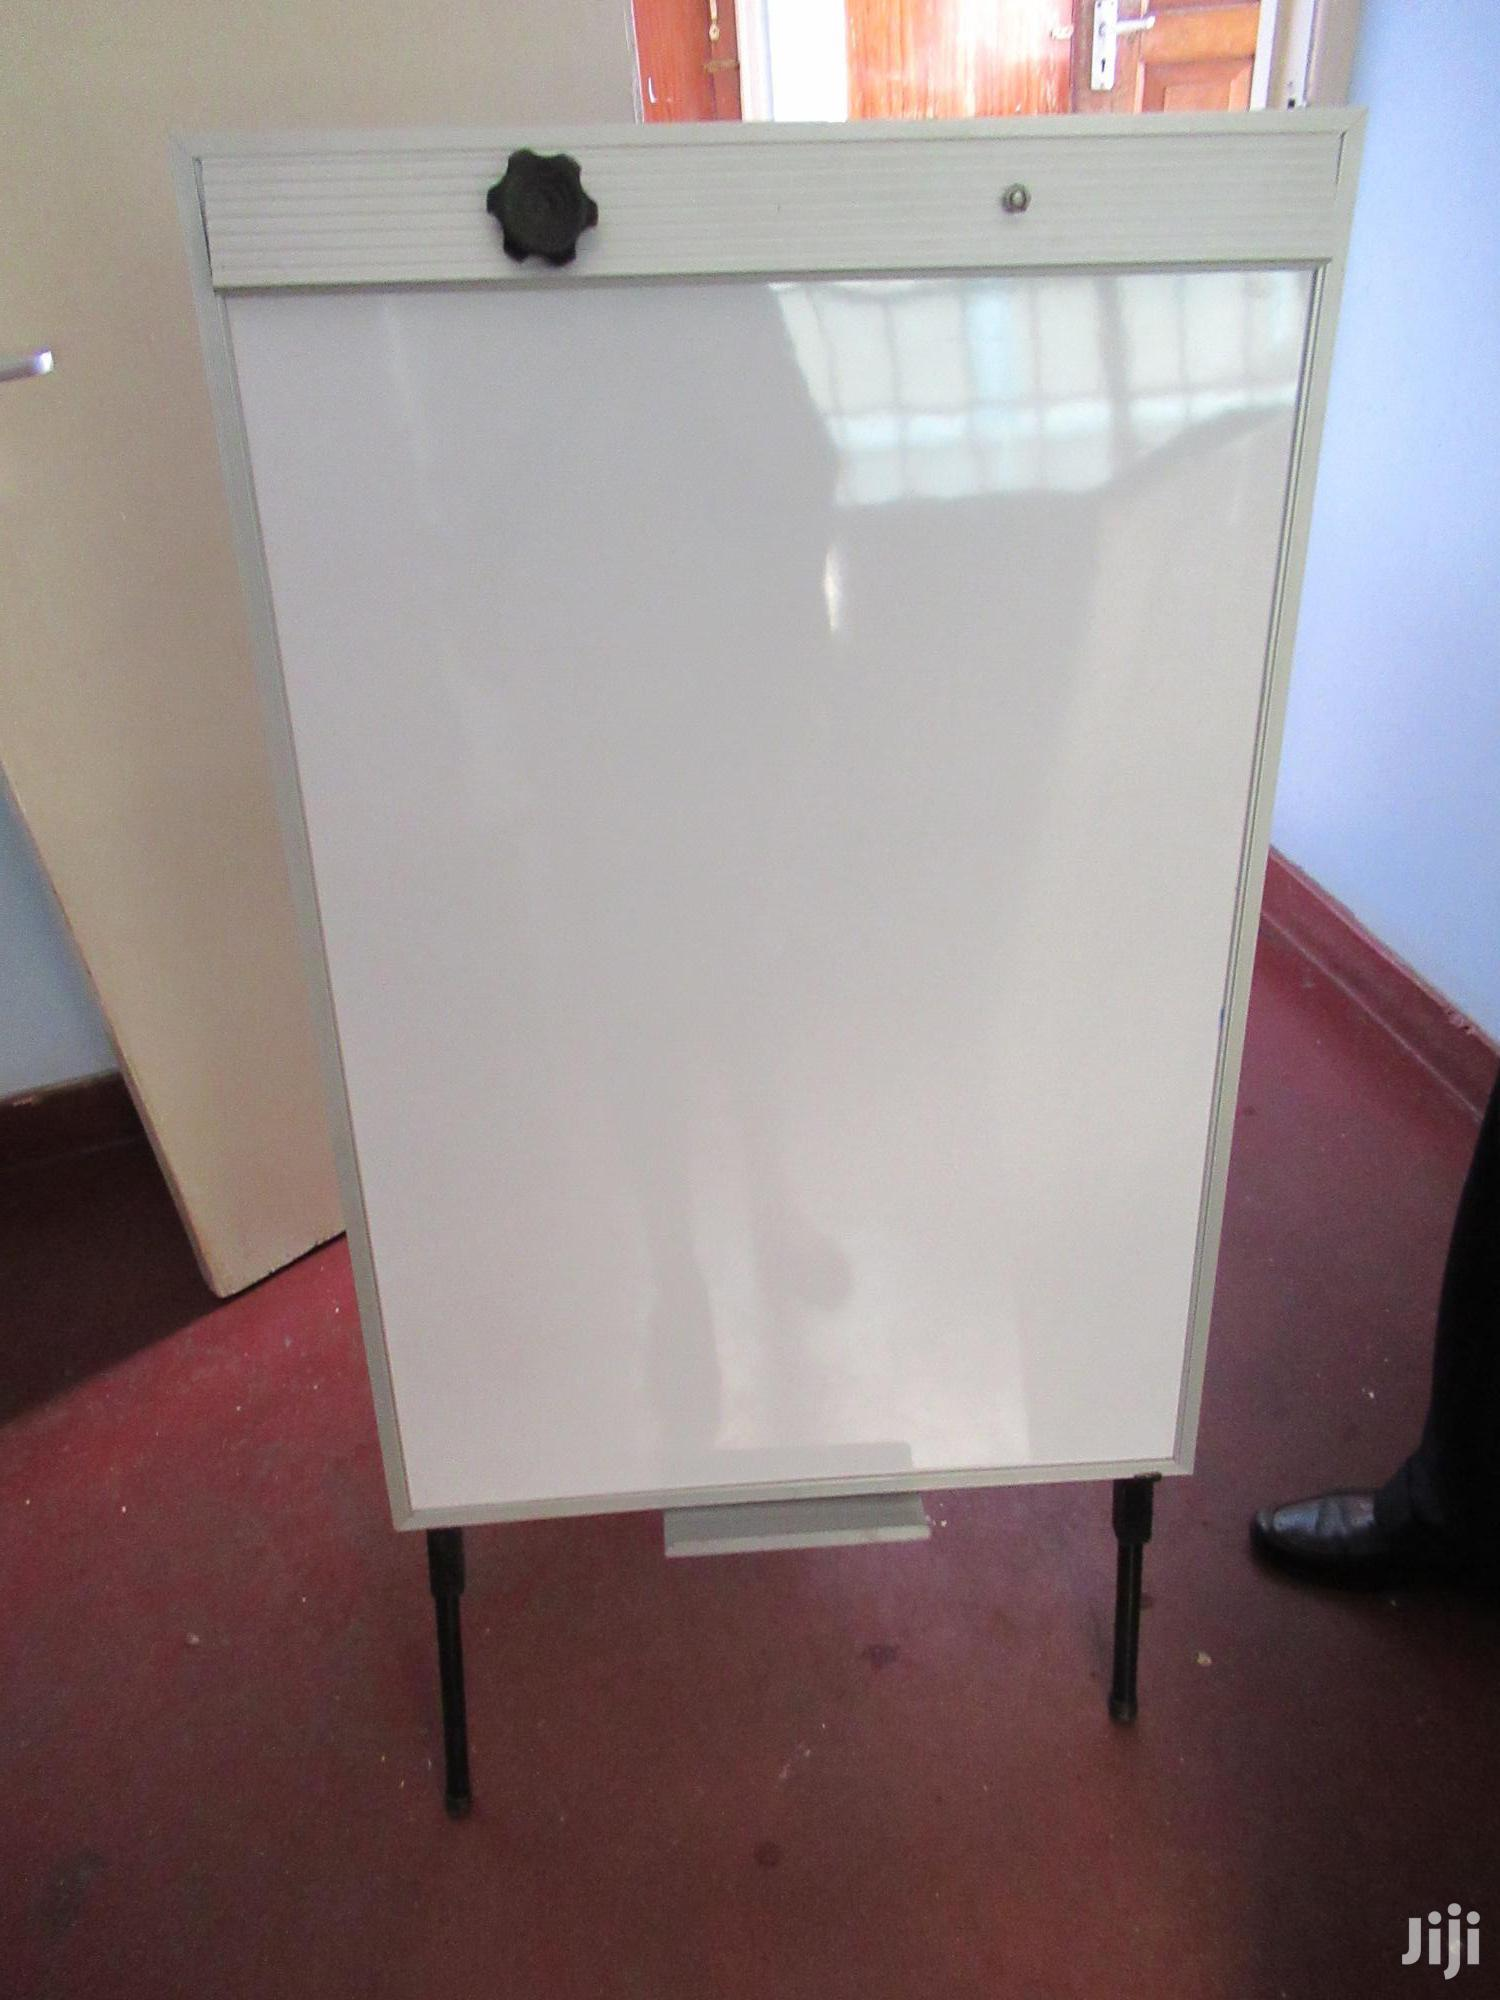 3*2ft Flip Chart Available